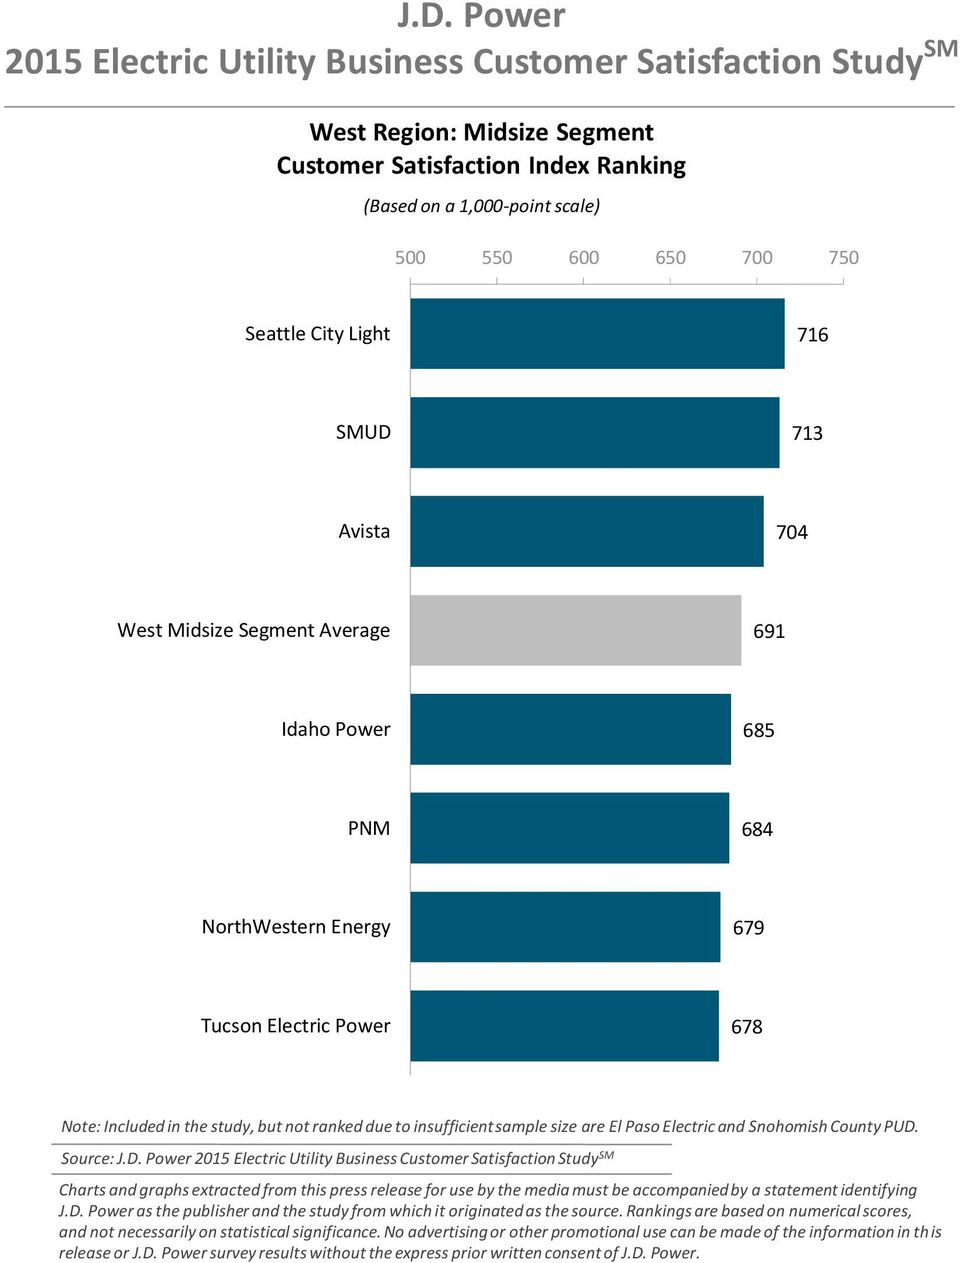 Tucson Electric Power 678 Note: Included in the study, but not ranked due to